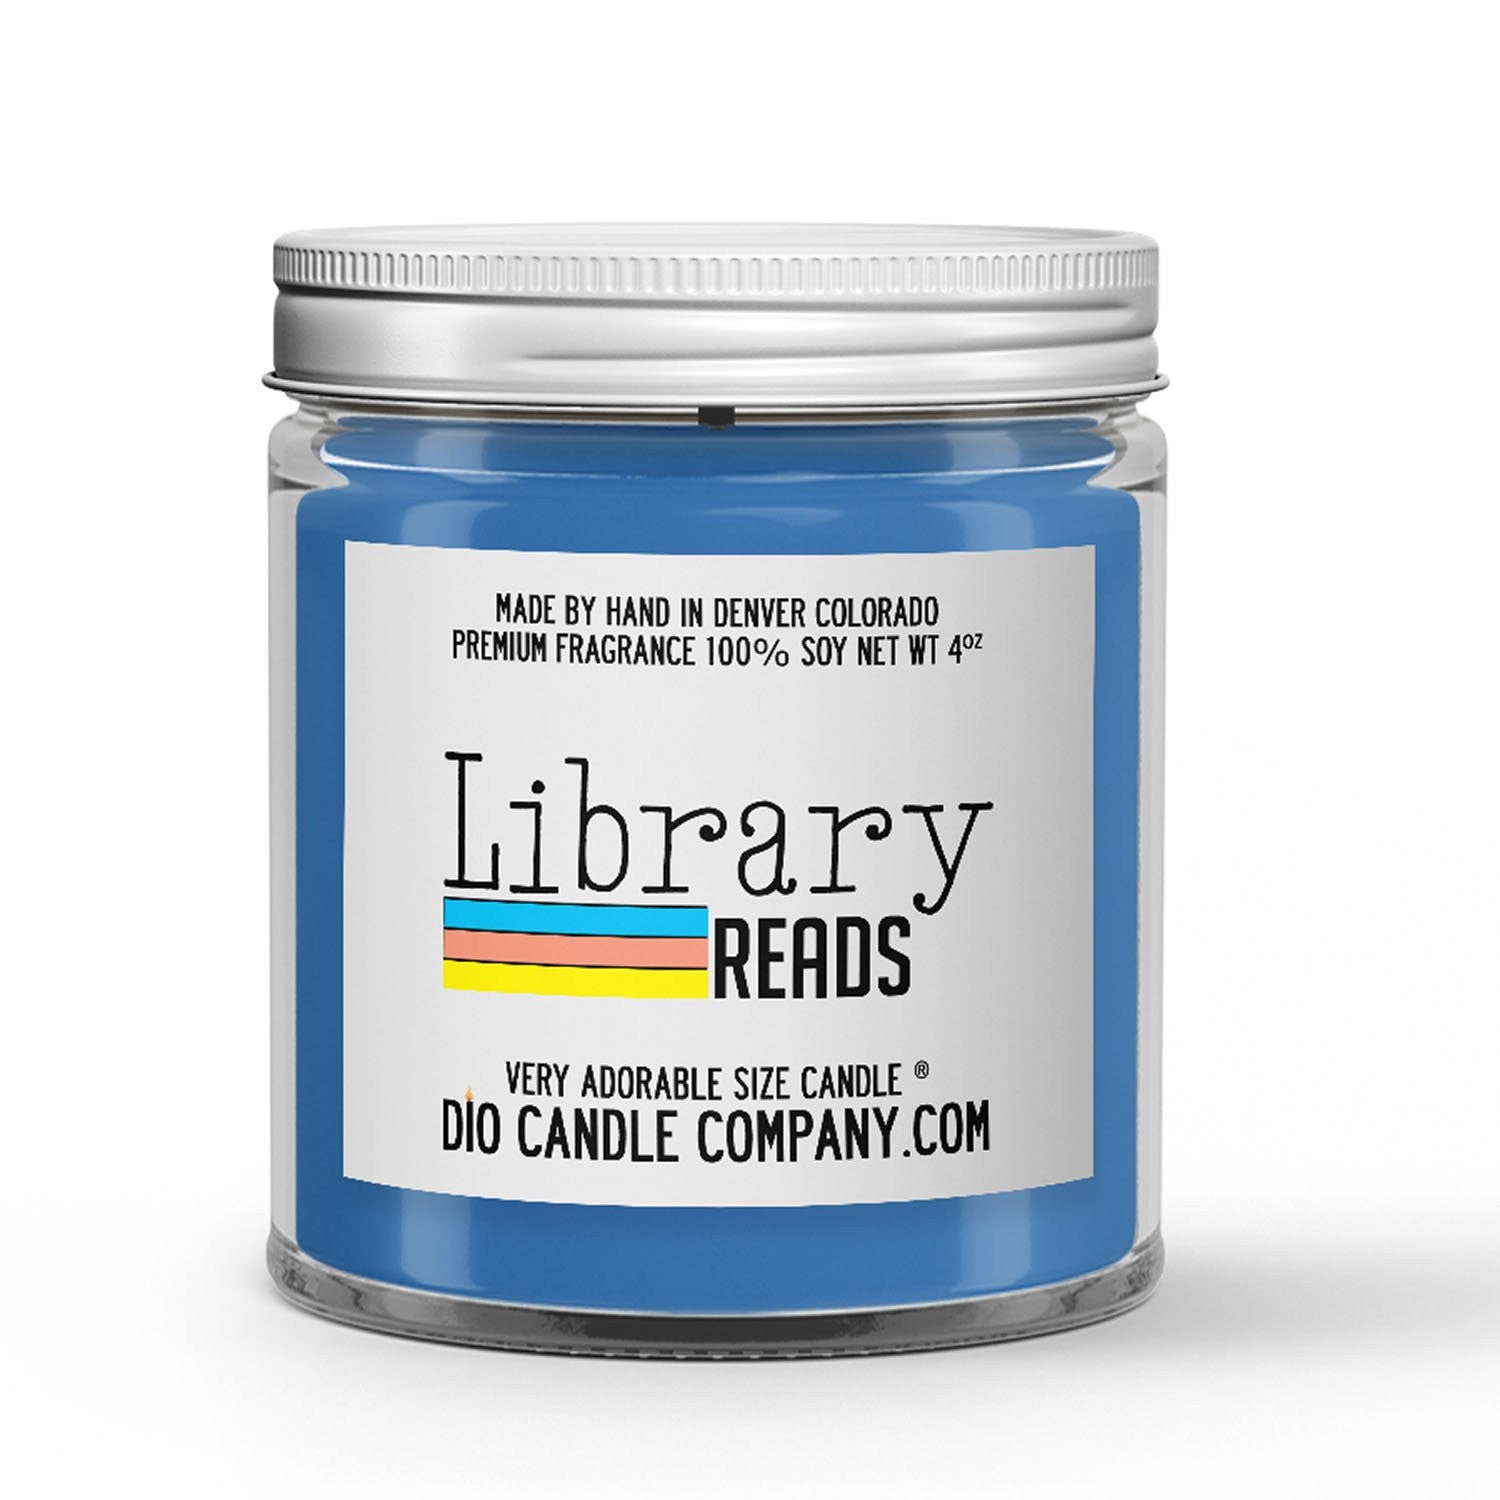 Library Reads Candle - Library Books - Spot of Tea - 4oz Very Adorable Size Candle® - Dio Candle Company